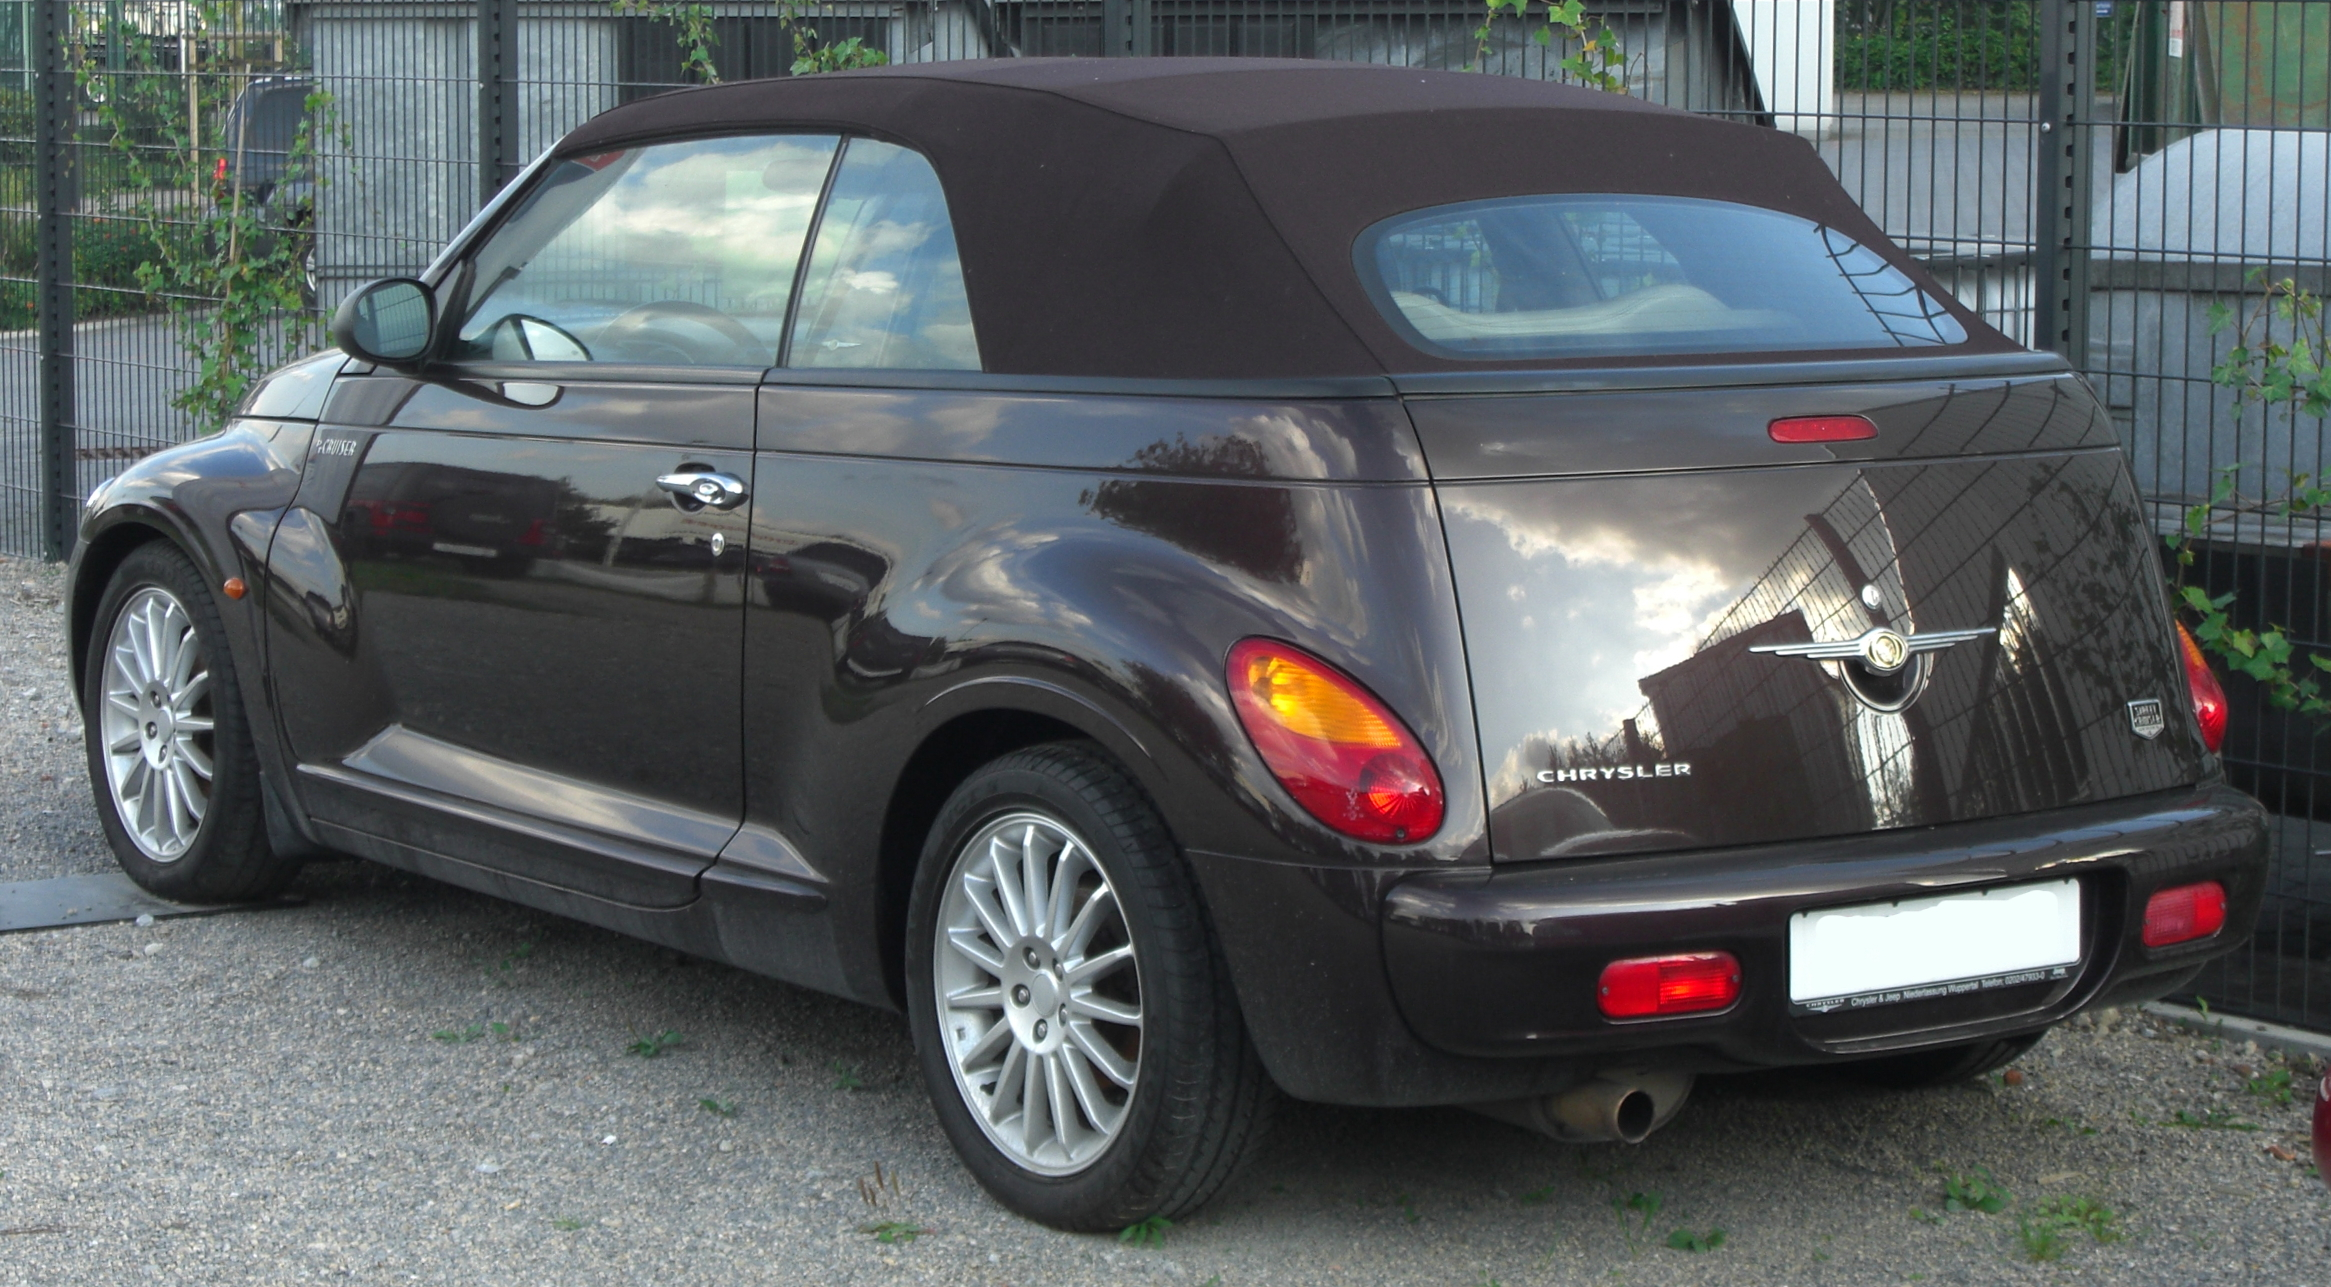 chrysler pt cruiser cabrio technical details history. Black Bedroom Furniture Sets. Home Design Ideas